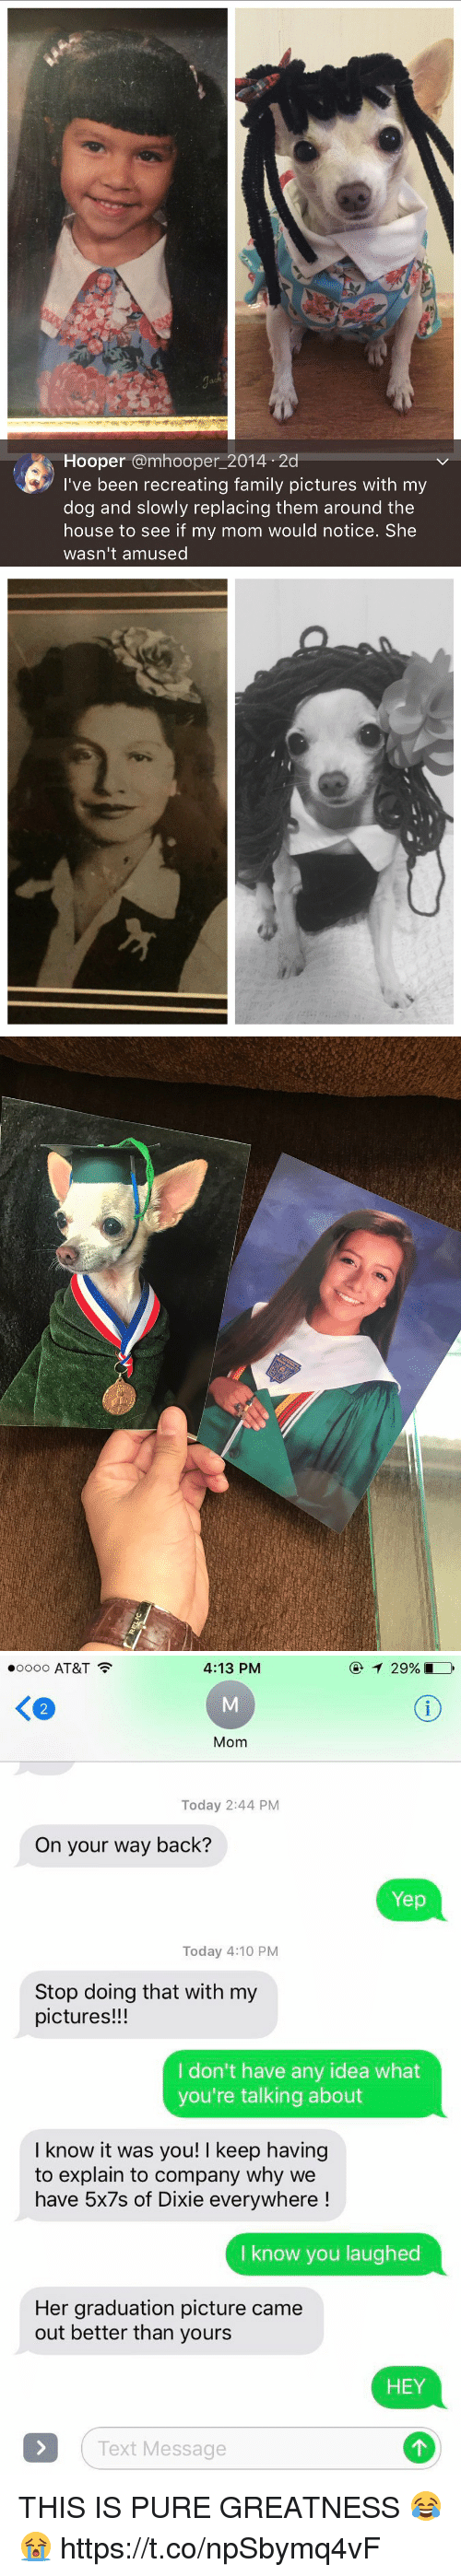 Family, At&t, and House: Hooper amhooper 2014 2d  I've been recreating family pictures with my  dog and slowly replacing them around the  house to see if my mom would notice. She  wasn't amused   RELIC   4:13 PM  oooo AT&T  Mom  Today 2:44 PM  On your way back?  Yep  Today 4:10 PM  Stop doing that with my  pictures!!!  I don't have any idea what  you're talking about  I know it was you! l keep having  to explain to company why we  have 5x7s of Dixie everywhere  know you laughed  Her graduation picture came  out better than yours  HEY  Text Message THIS IS PURE GREATNESS 😂😭 https://t.co/npSbymq4vF